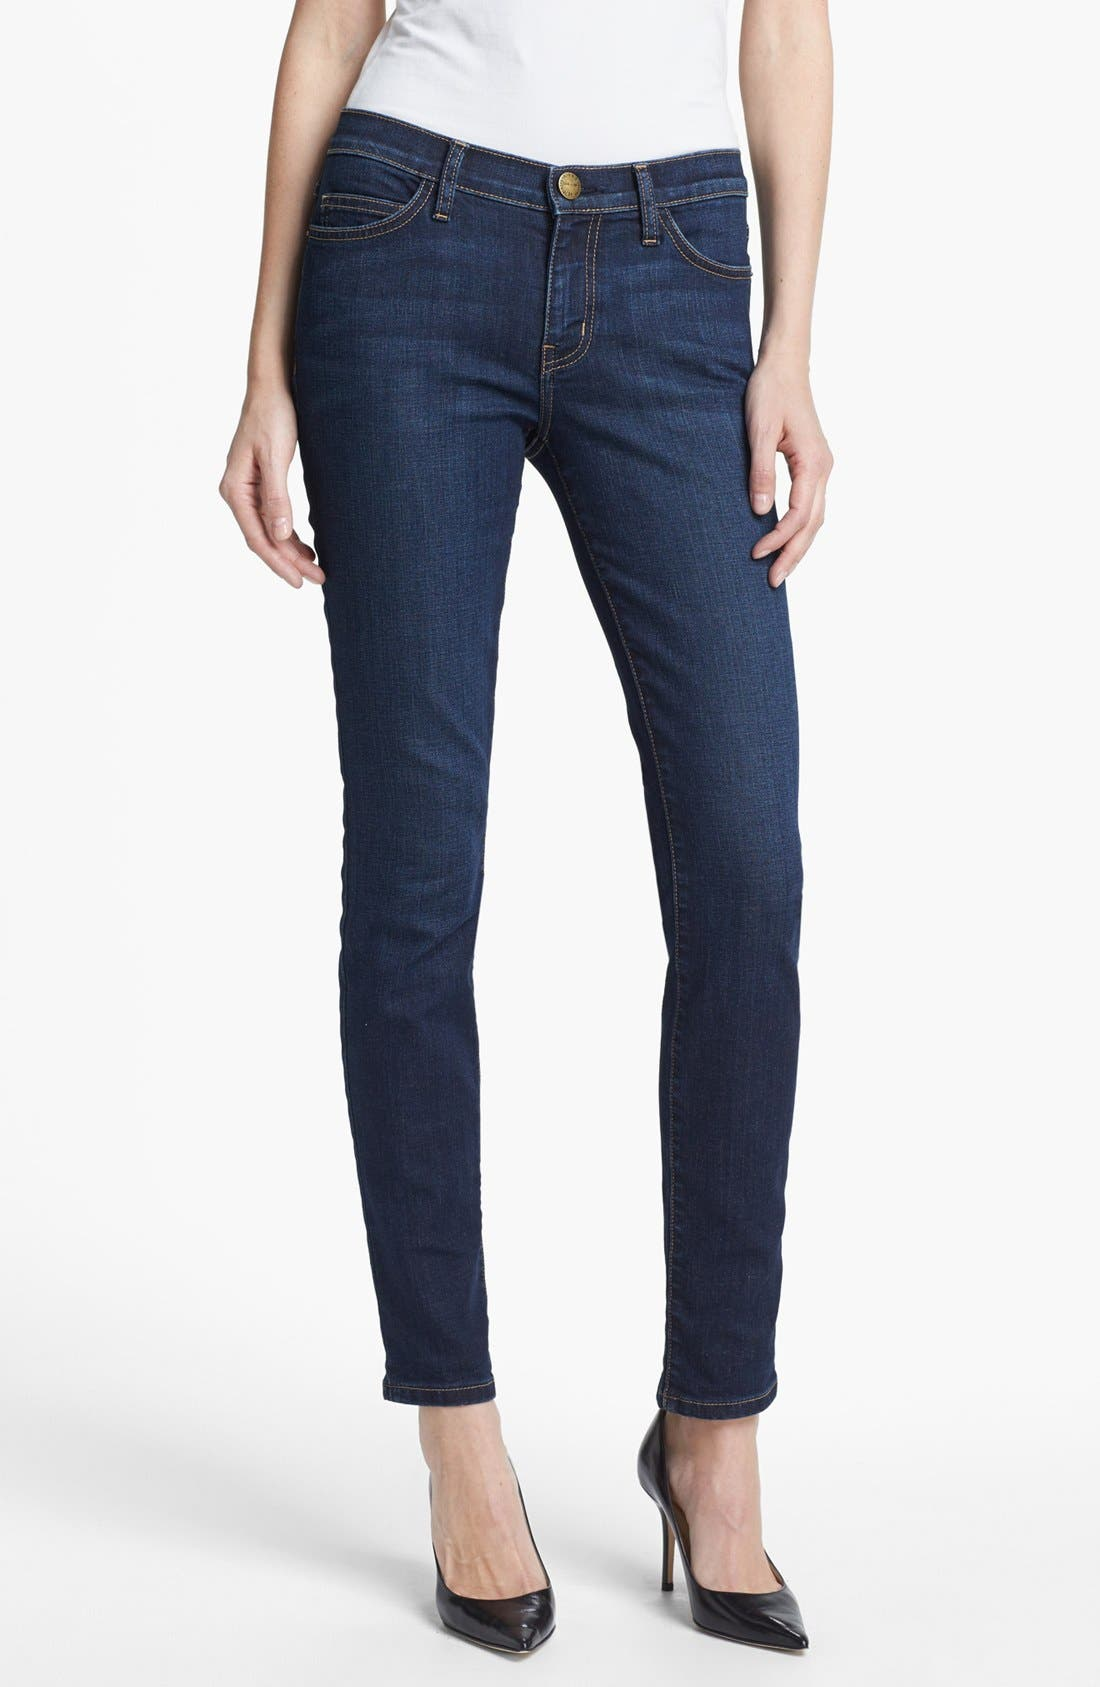 Main Image - Current/Elliott 'The Ankle' Skinny Jeans (Nordstrom Exclusive)